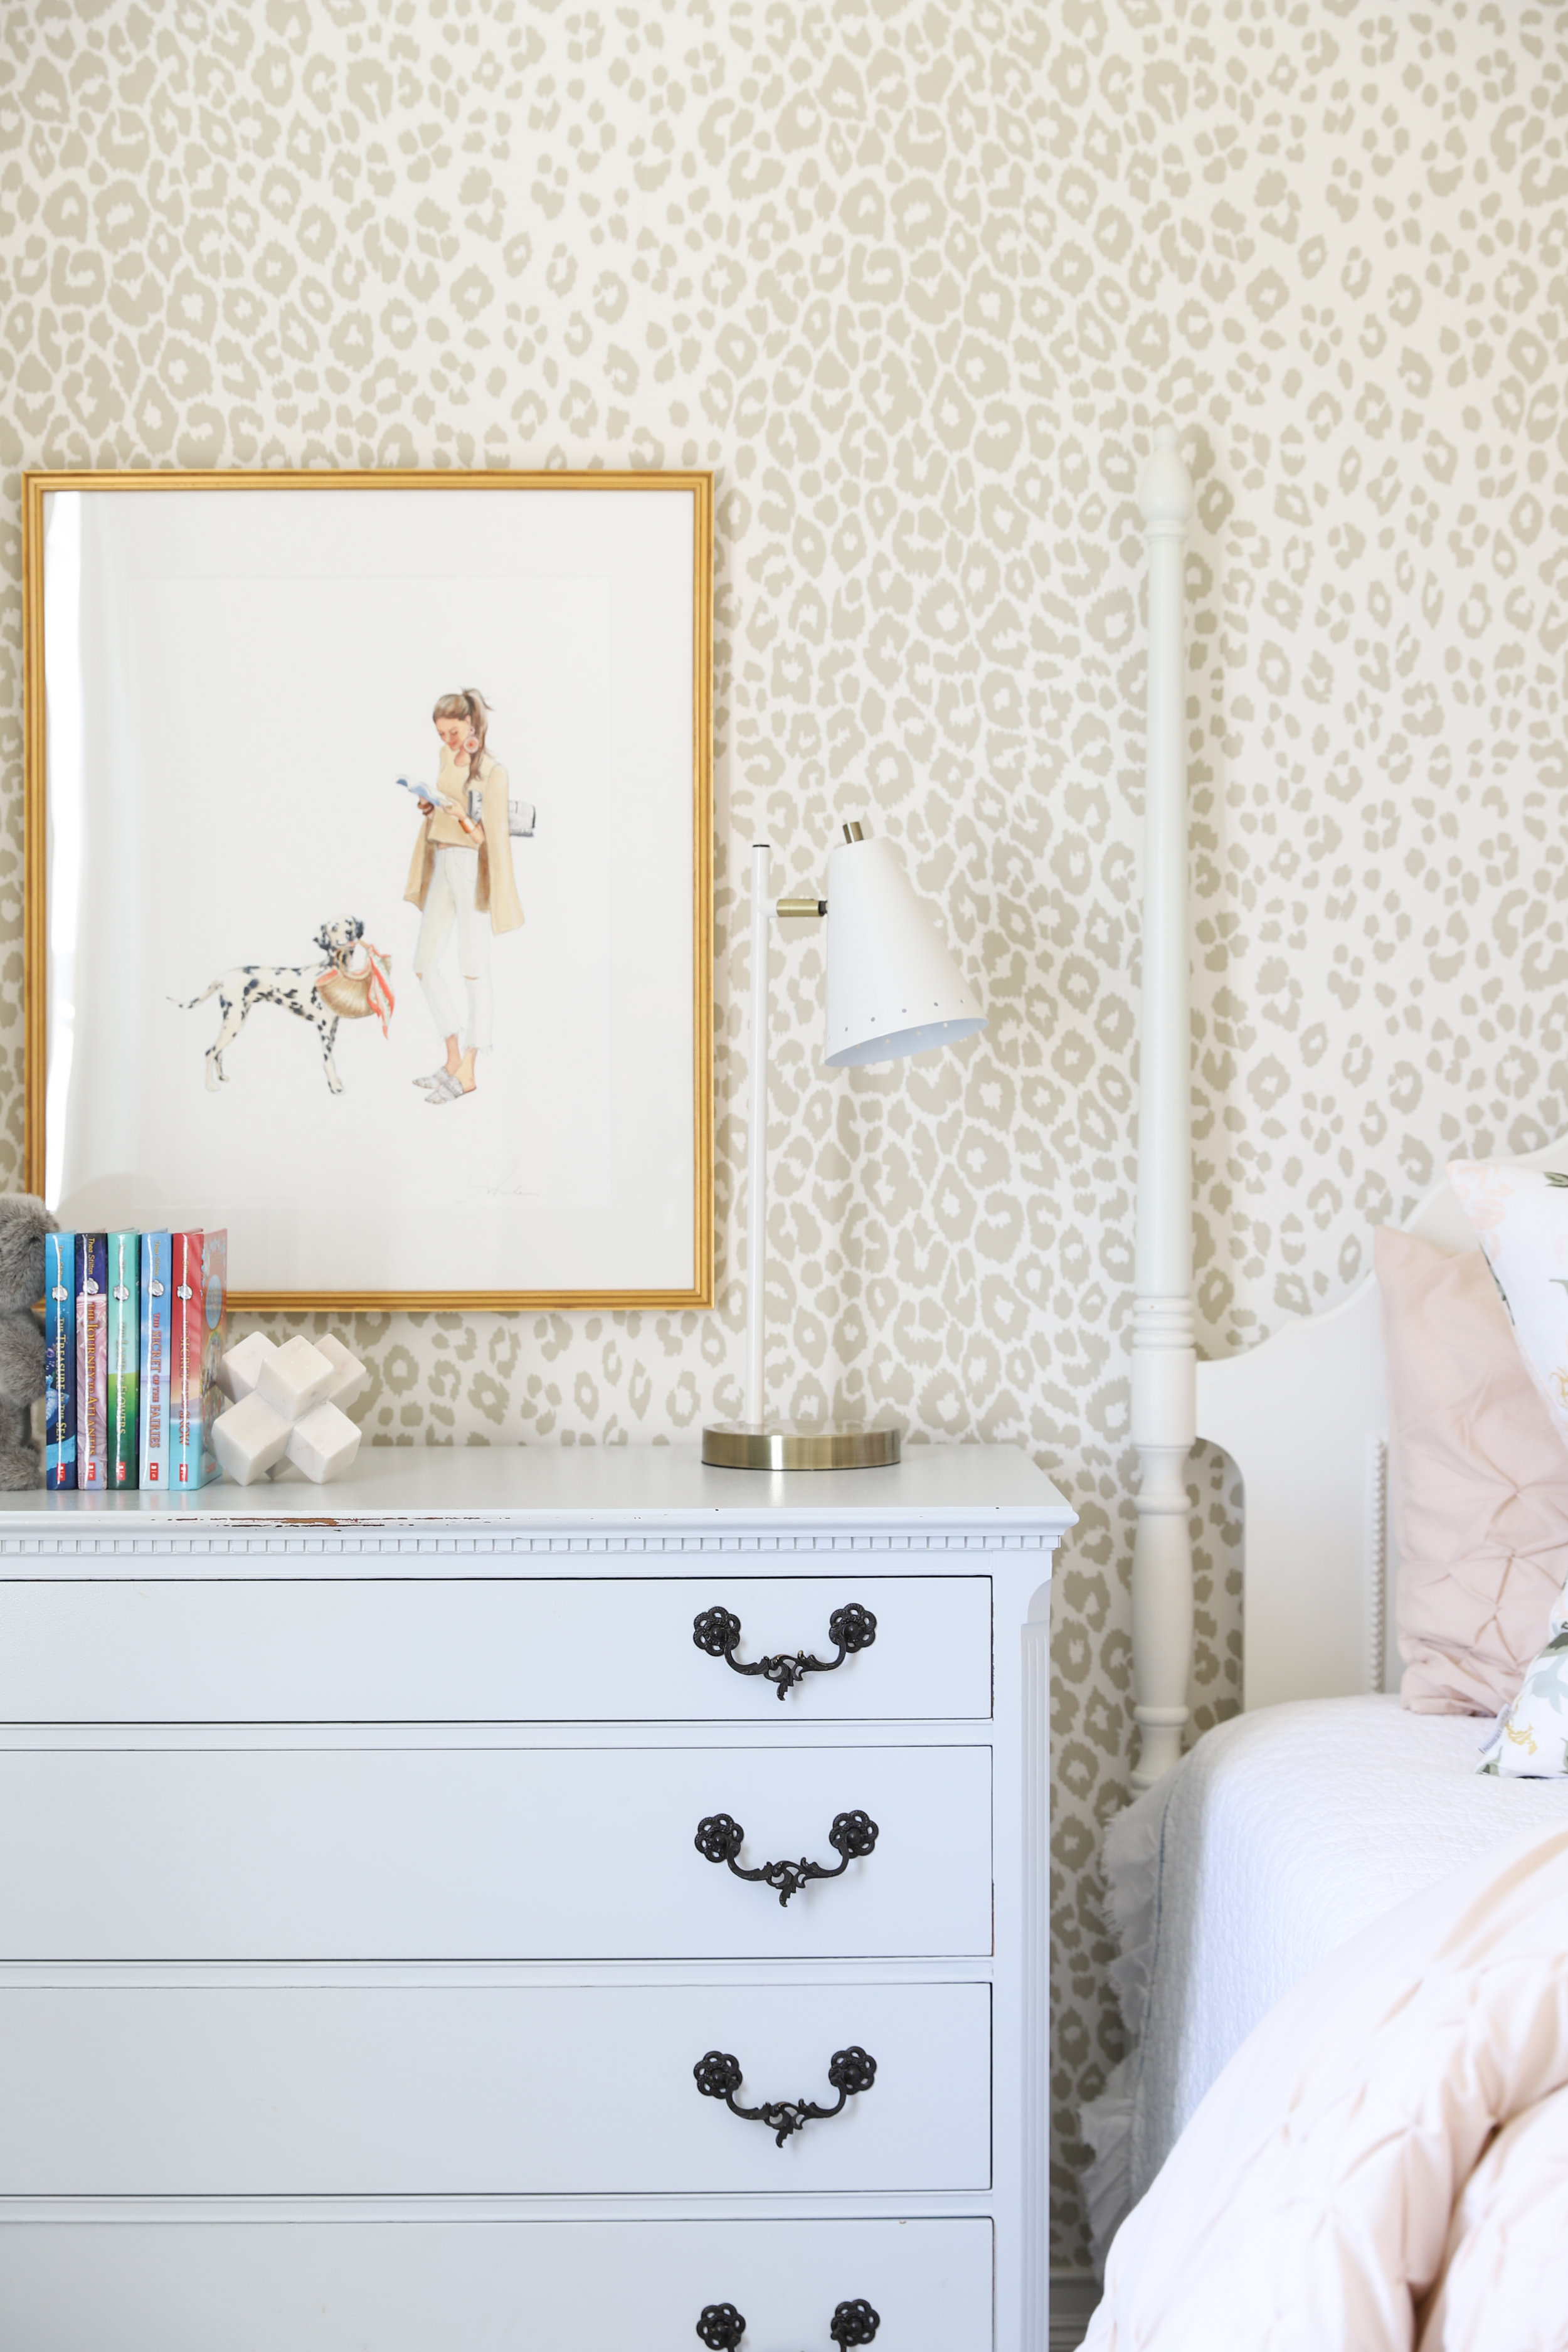 Artwork by Inslee Farris- Tween Girls Bedroom Design by Laura Design Co., Photo by Emily Kennedy